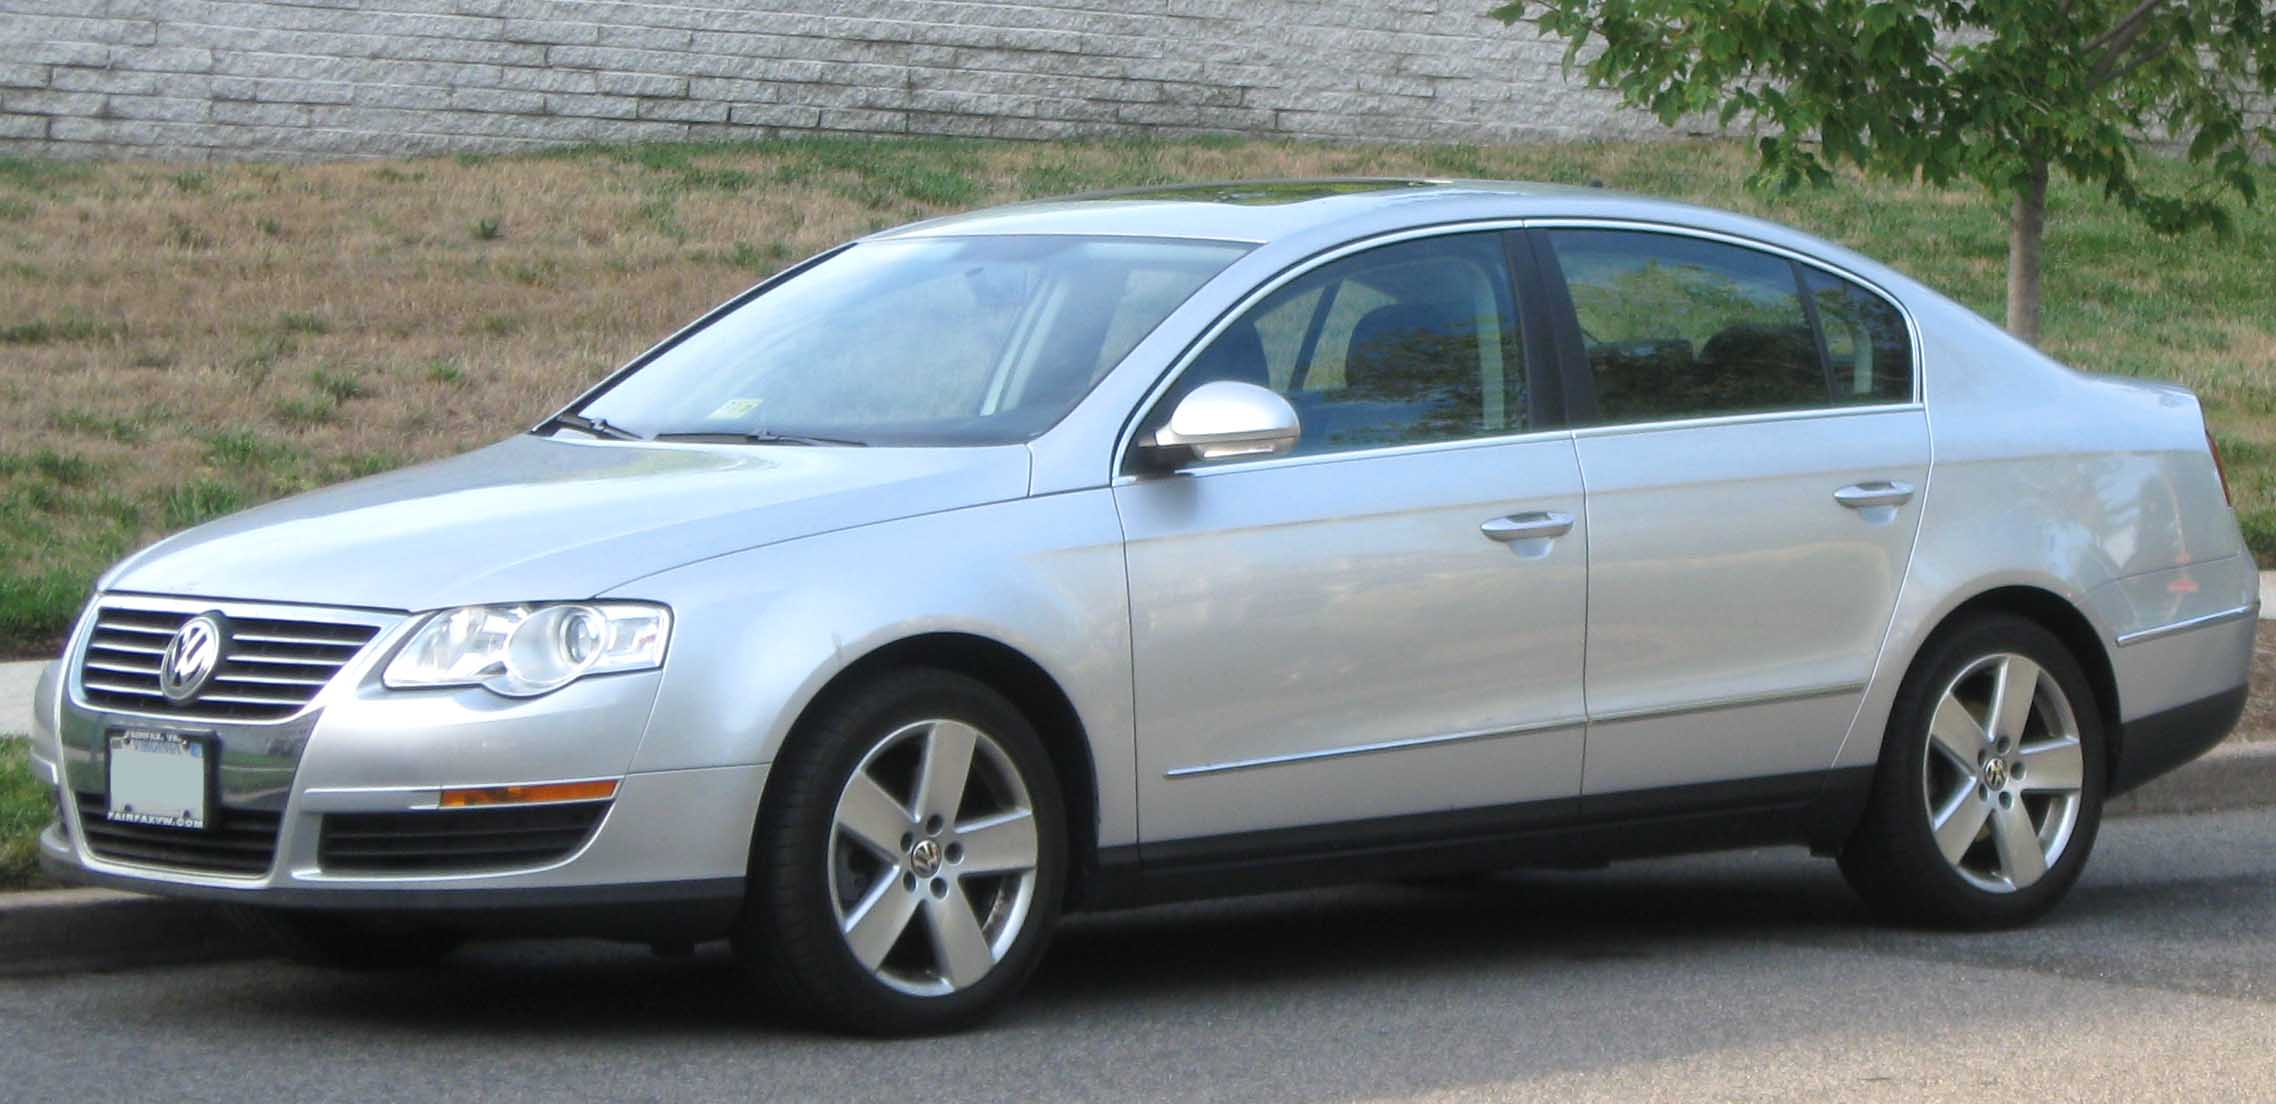 2010 volkswagen passat information and photos momentcar. Black Bedroom Furniture Sets. Home Design Ideas